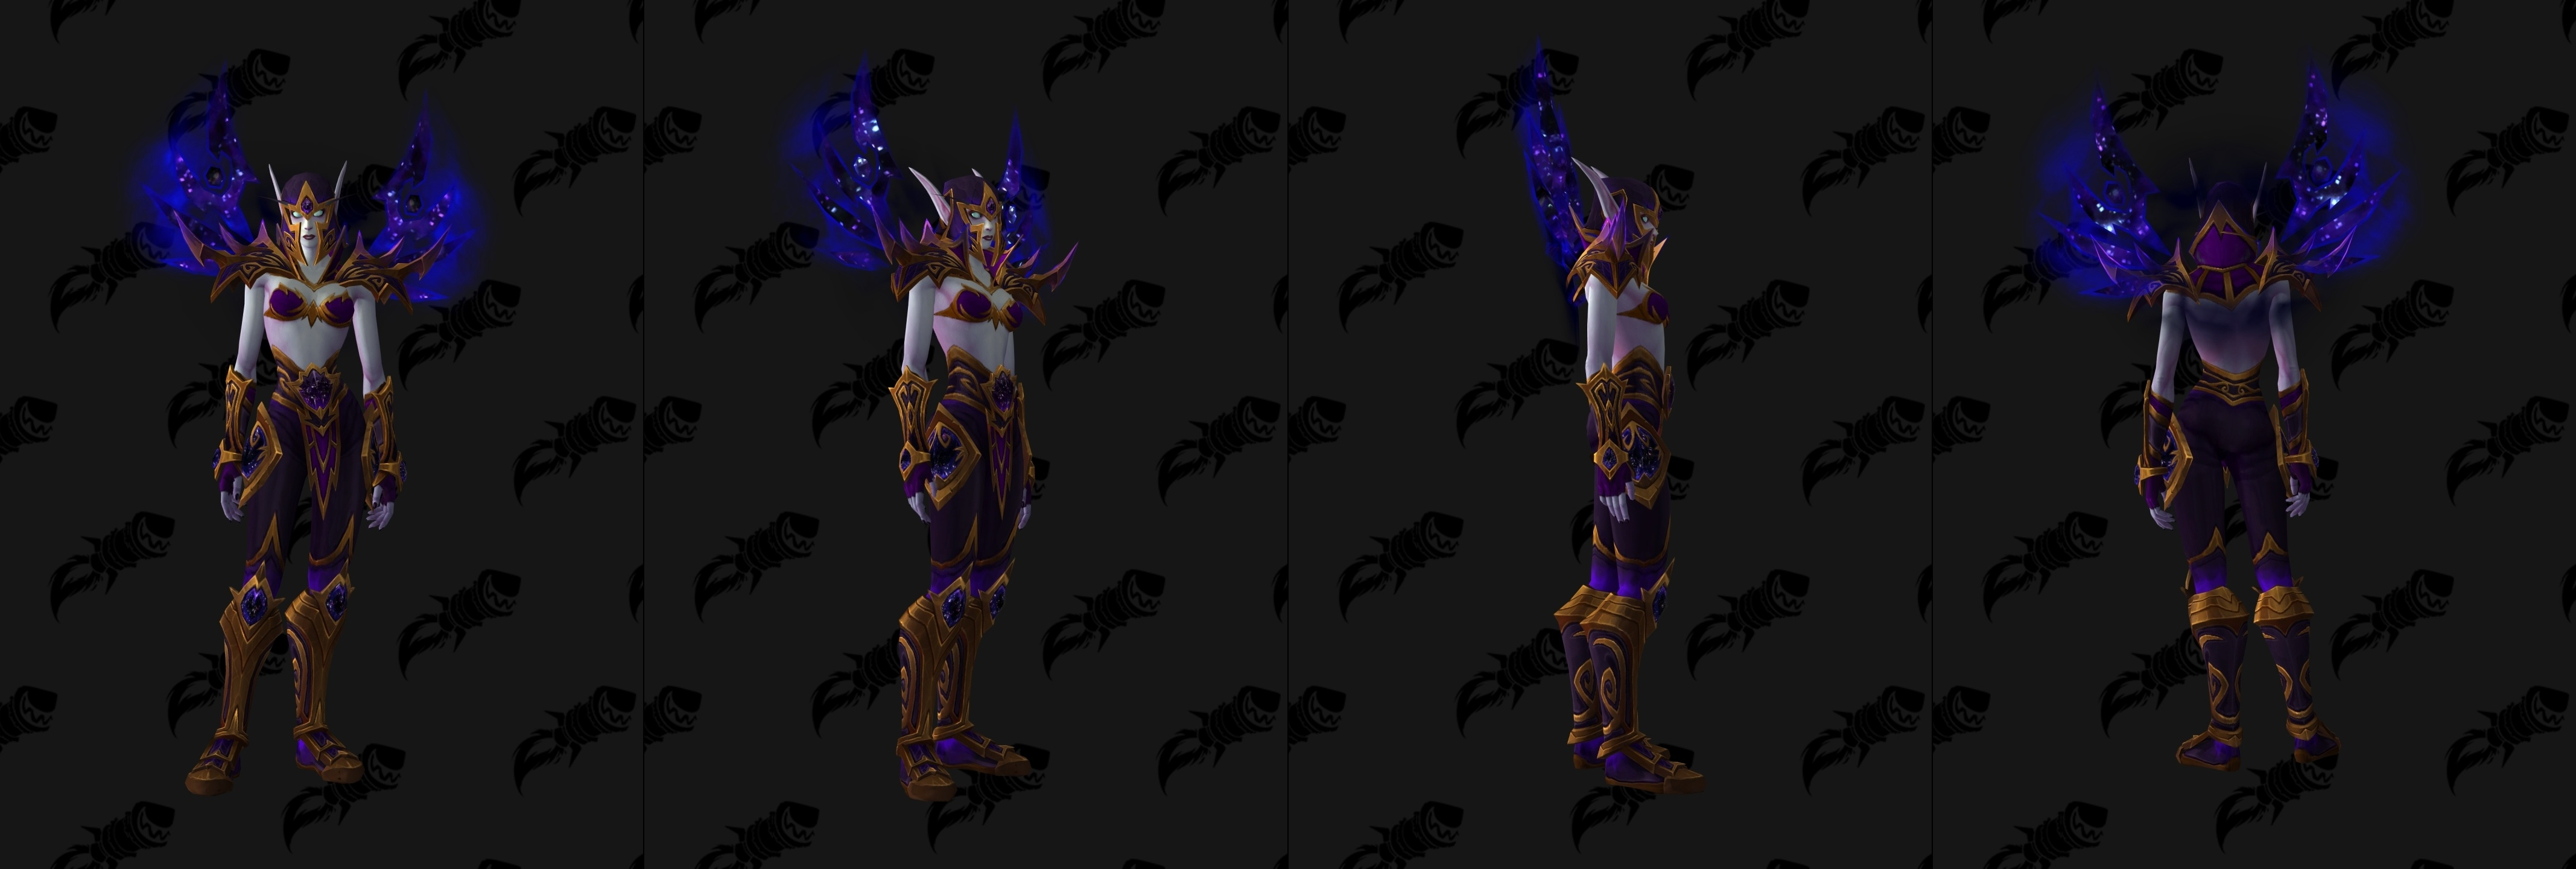 Heritage Armor Sets Guides Wowhead Added in world of warcraft: heritage armor sets guides wowhead